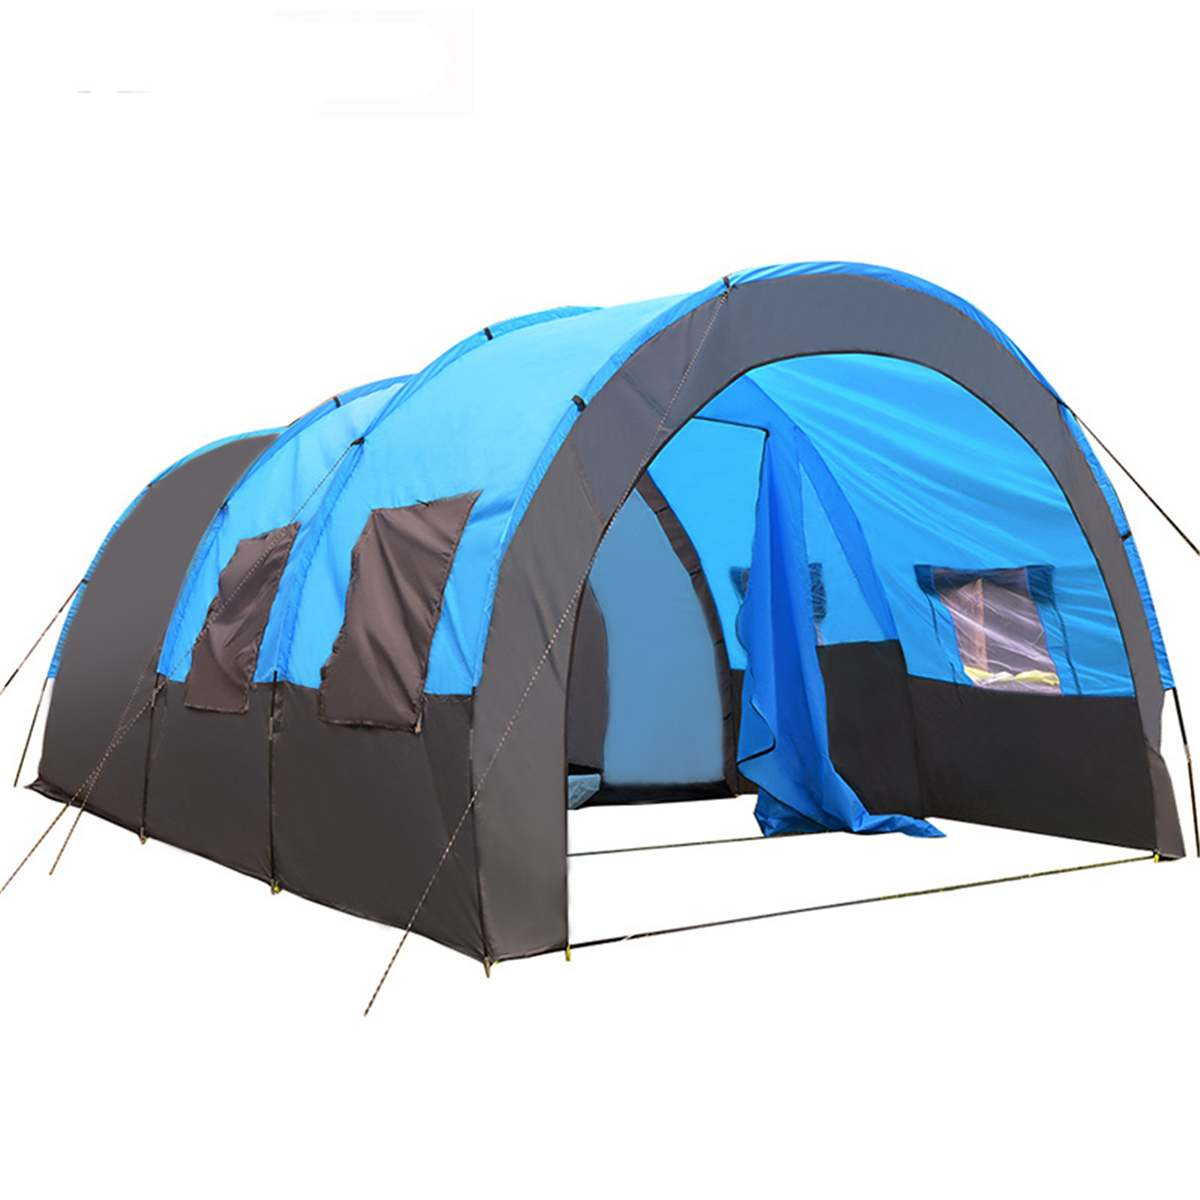 Large Camping Tent Waterproof Canvas Fiberglass 8-10 People Double Layer Large Family Tent Sunshade Outdoor Equipment